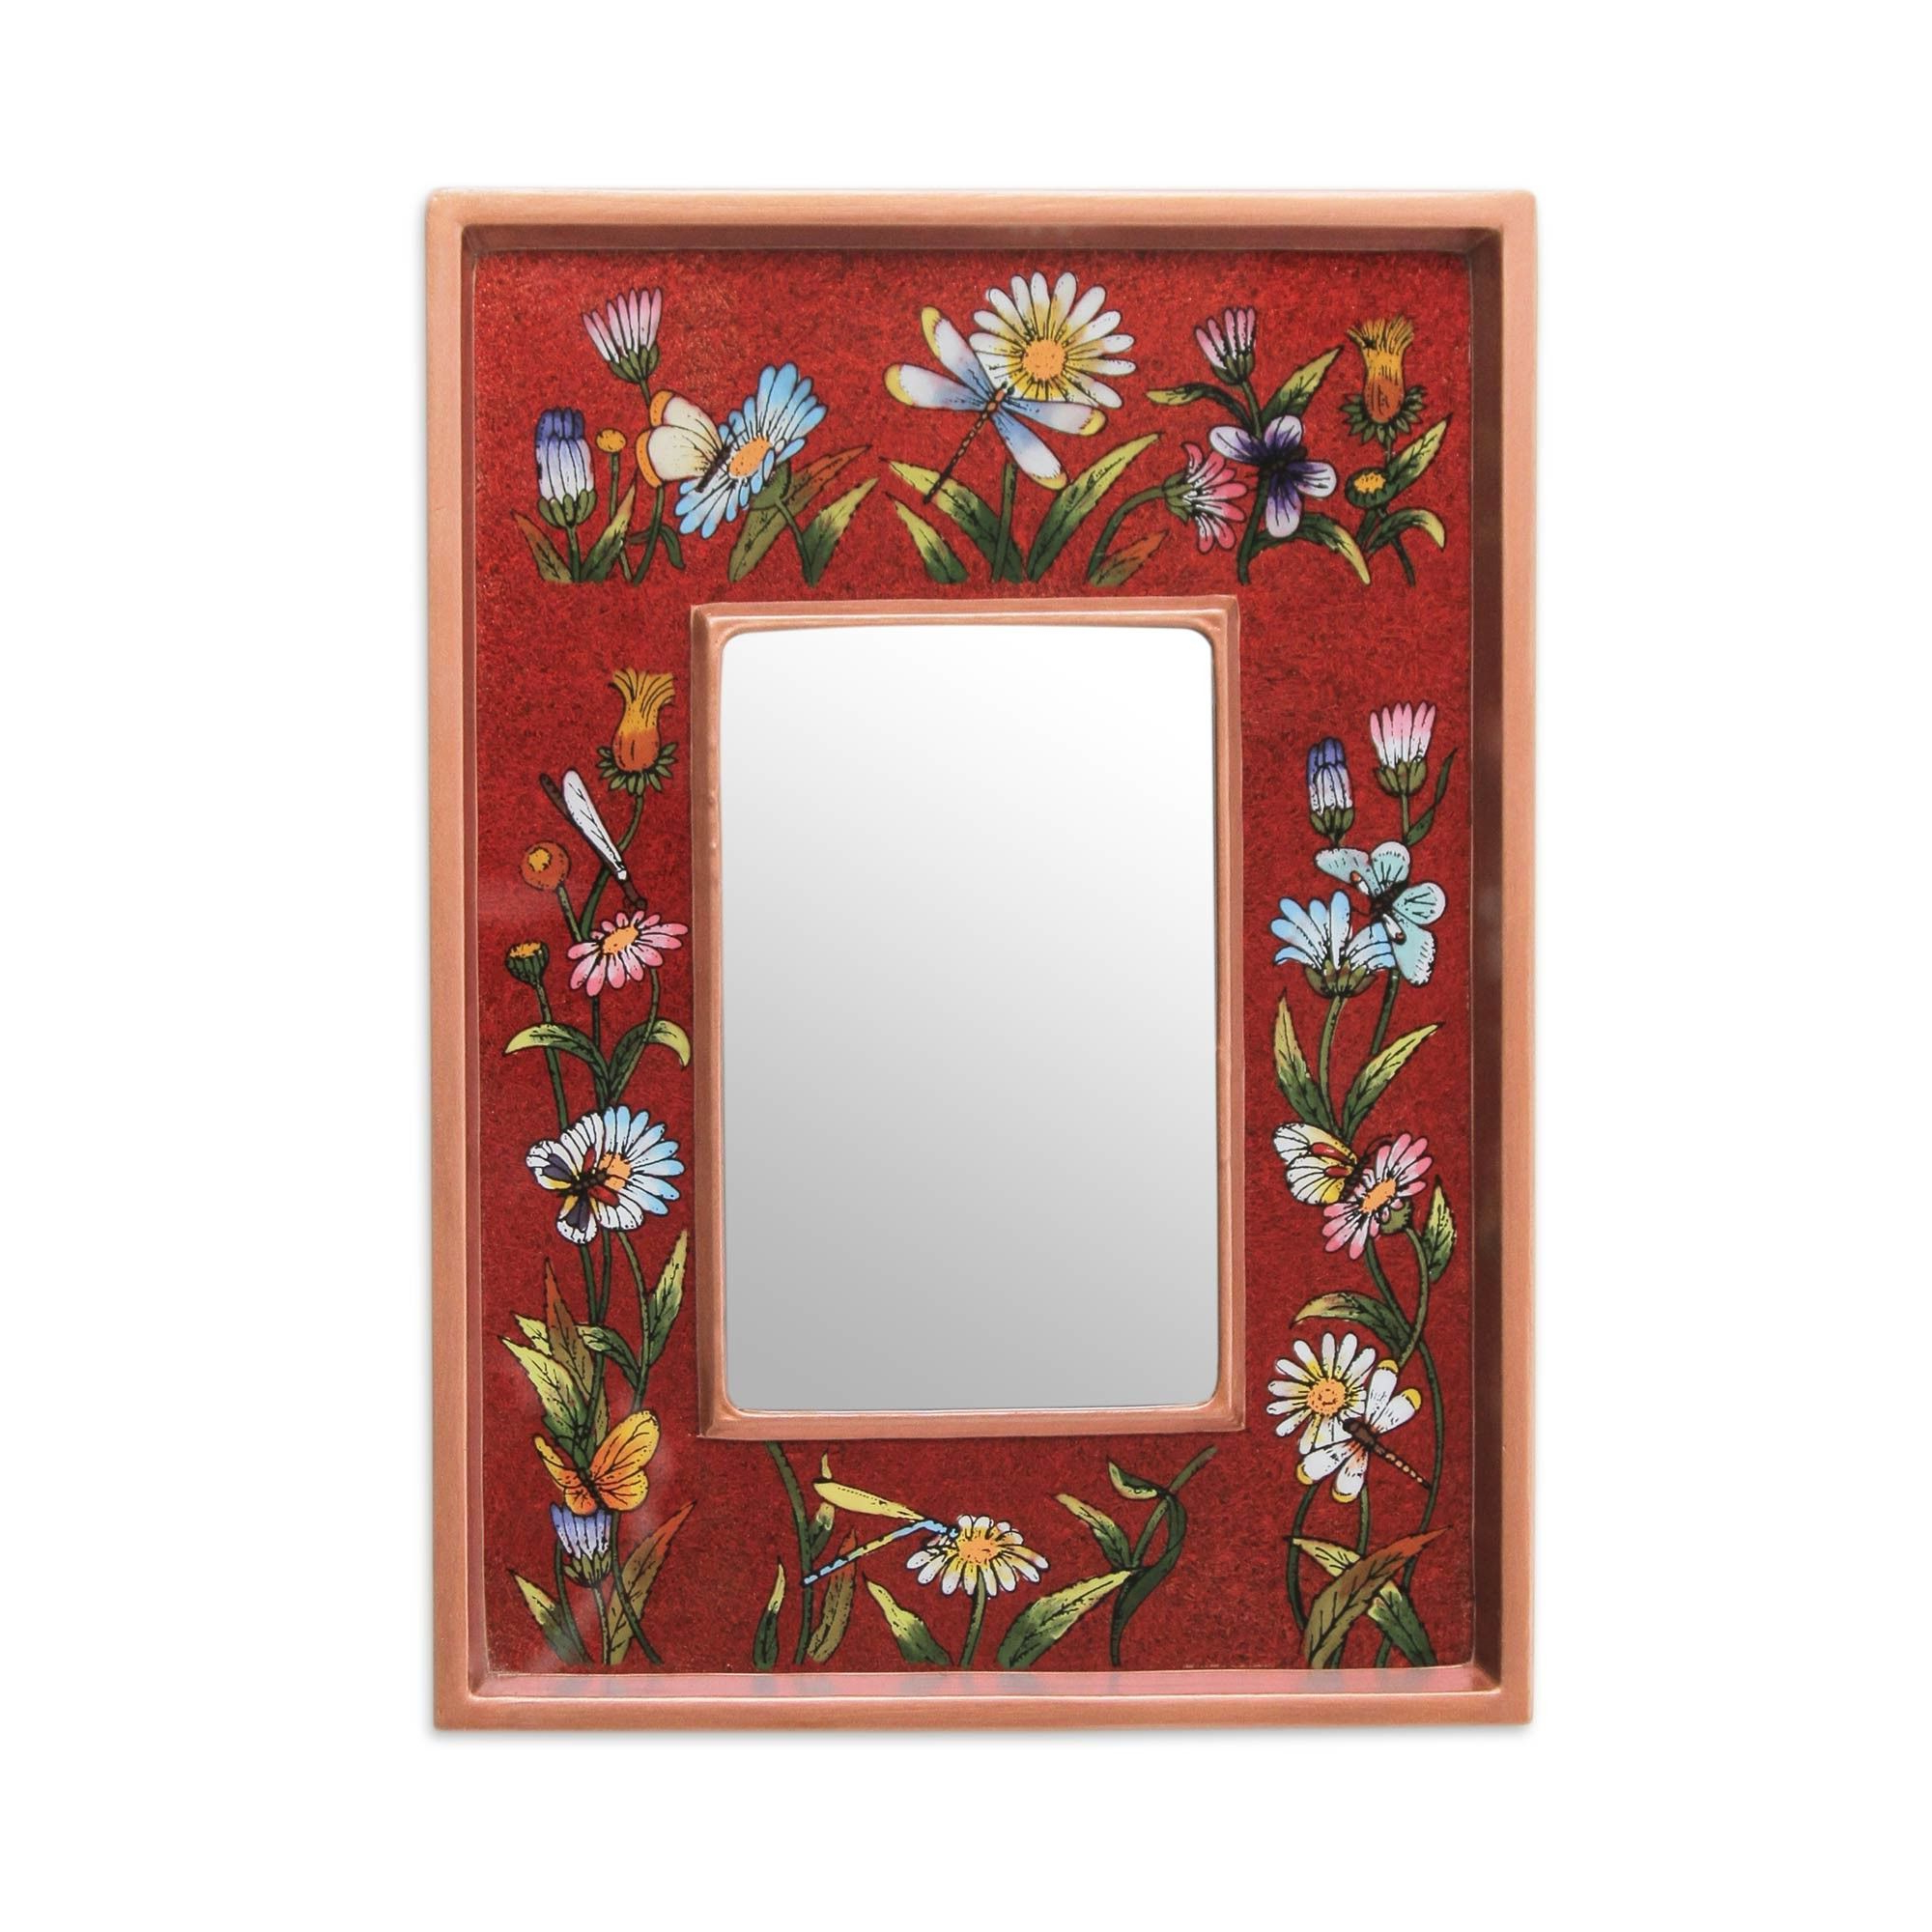 Scarlet Fields Modern Andean Hand Painted Modern & Contemporary Wall Within Preferred Hand Painted Wall Mirrors (View 19 of 20)